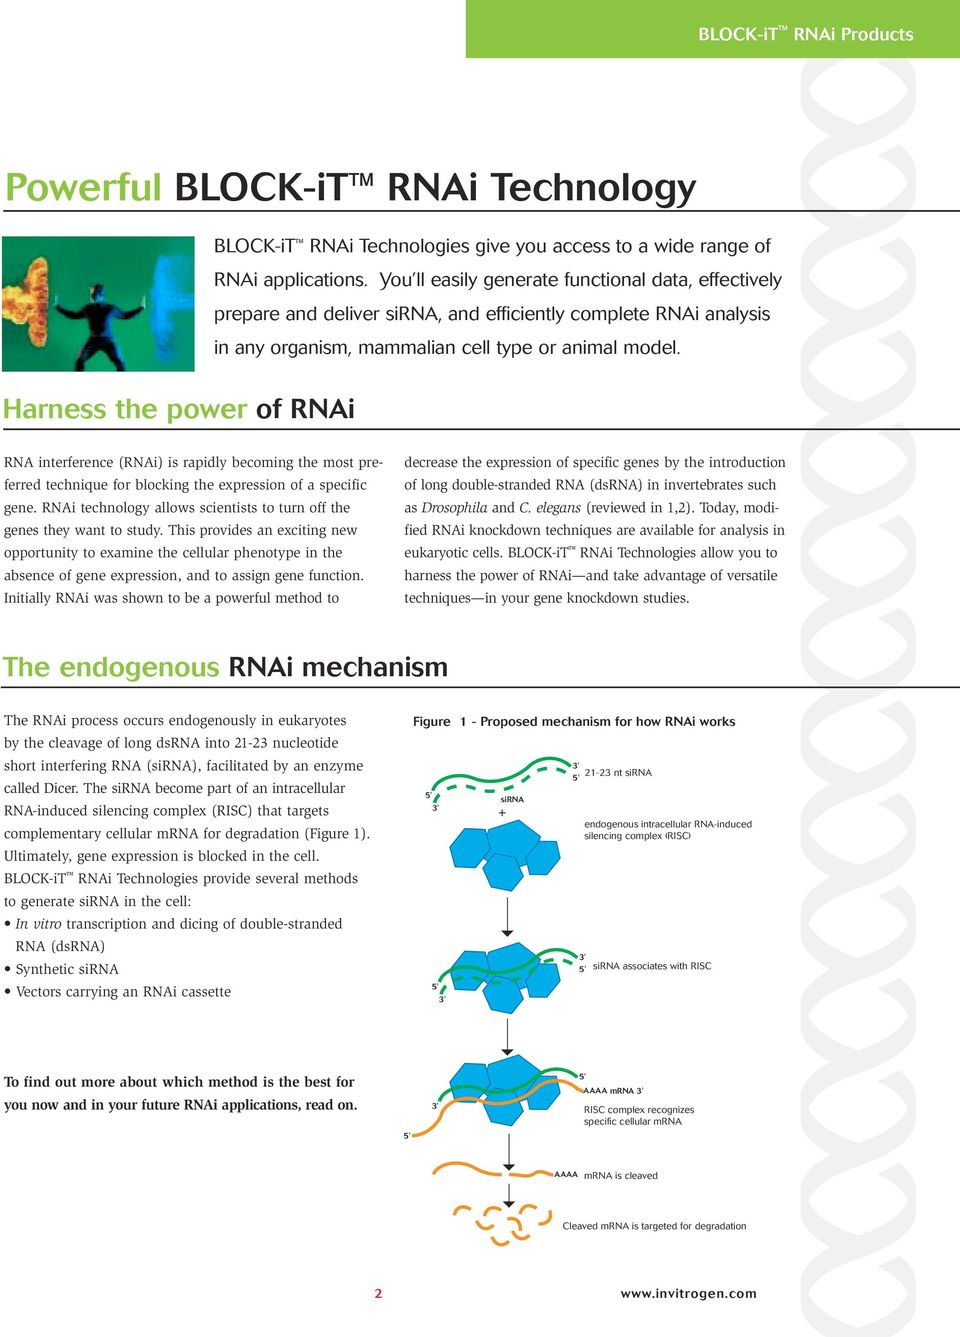 RNA interference (RNAi) is rapidly becoming the most preferred technique for blocking the expression of a specific gene. RNAi technology allows scientists to turn off the genes they want to study.